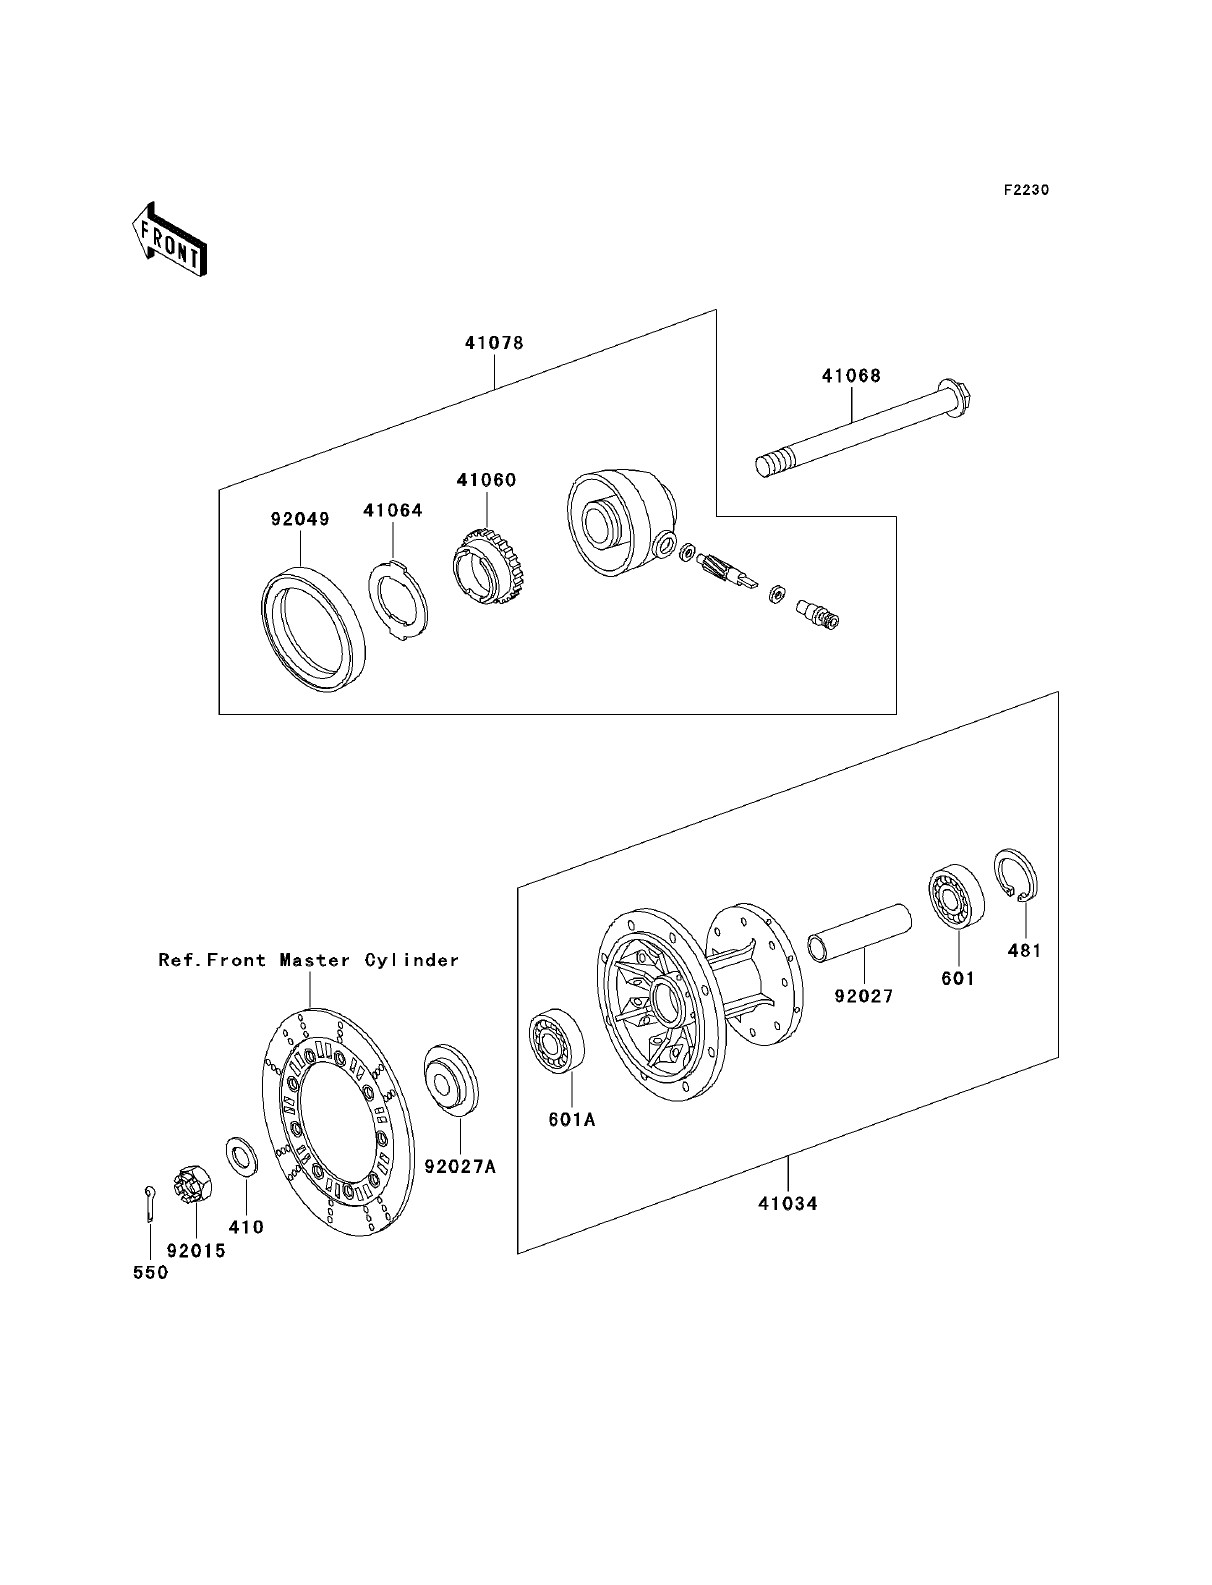 Rear Brake Drum assembly Diagram Kawasaki Klr250 Kawasaki Klr250 Parts Diagrams Of Rear Brake Drum assembly Diagram